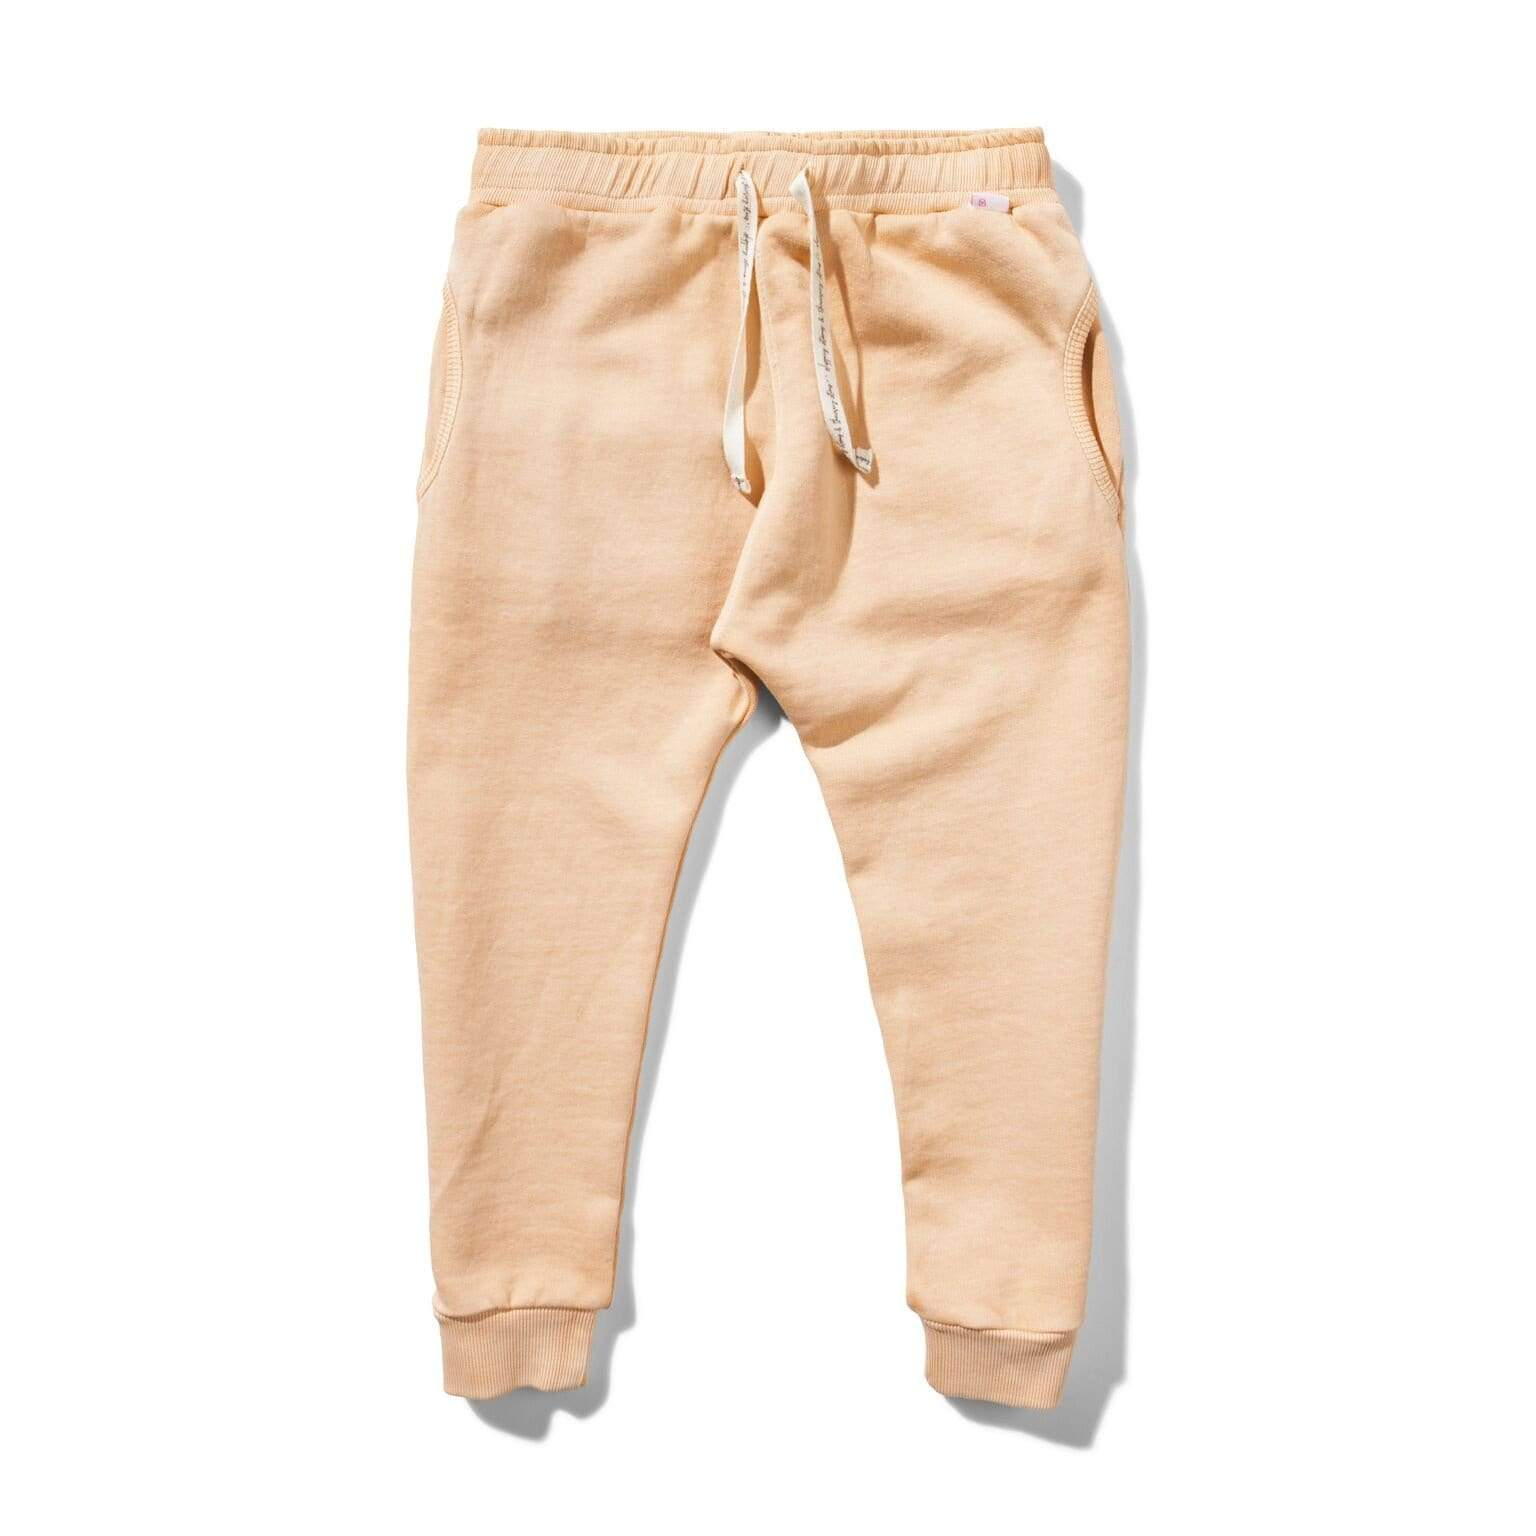 Munster Jumpers Prairie Sunset Pant - Apricot Wash